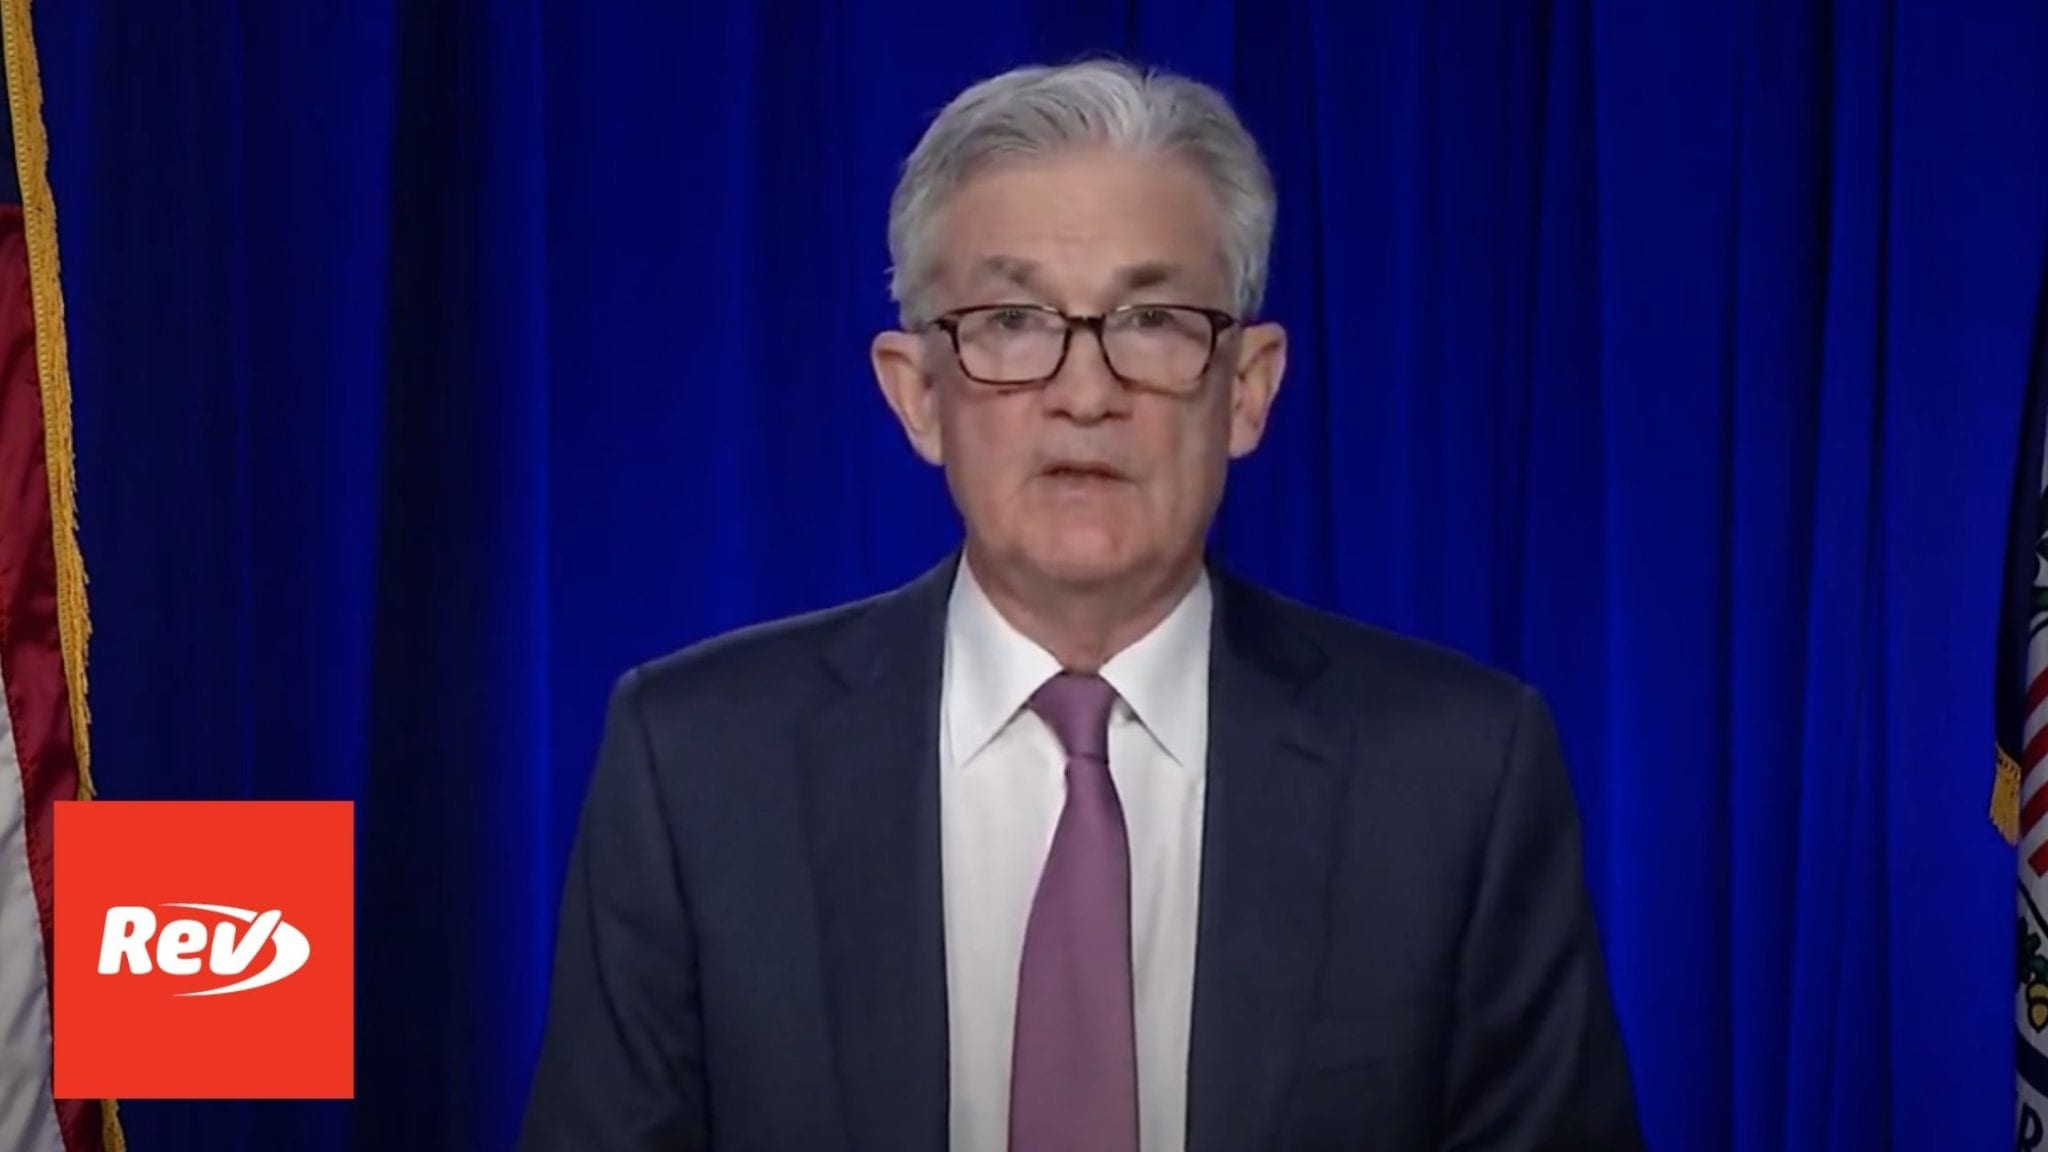 Fed Chair Jerome Powell Press Conference Transcript December 16: Market Update